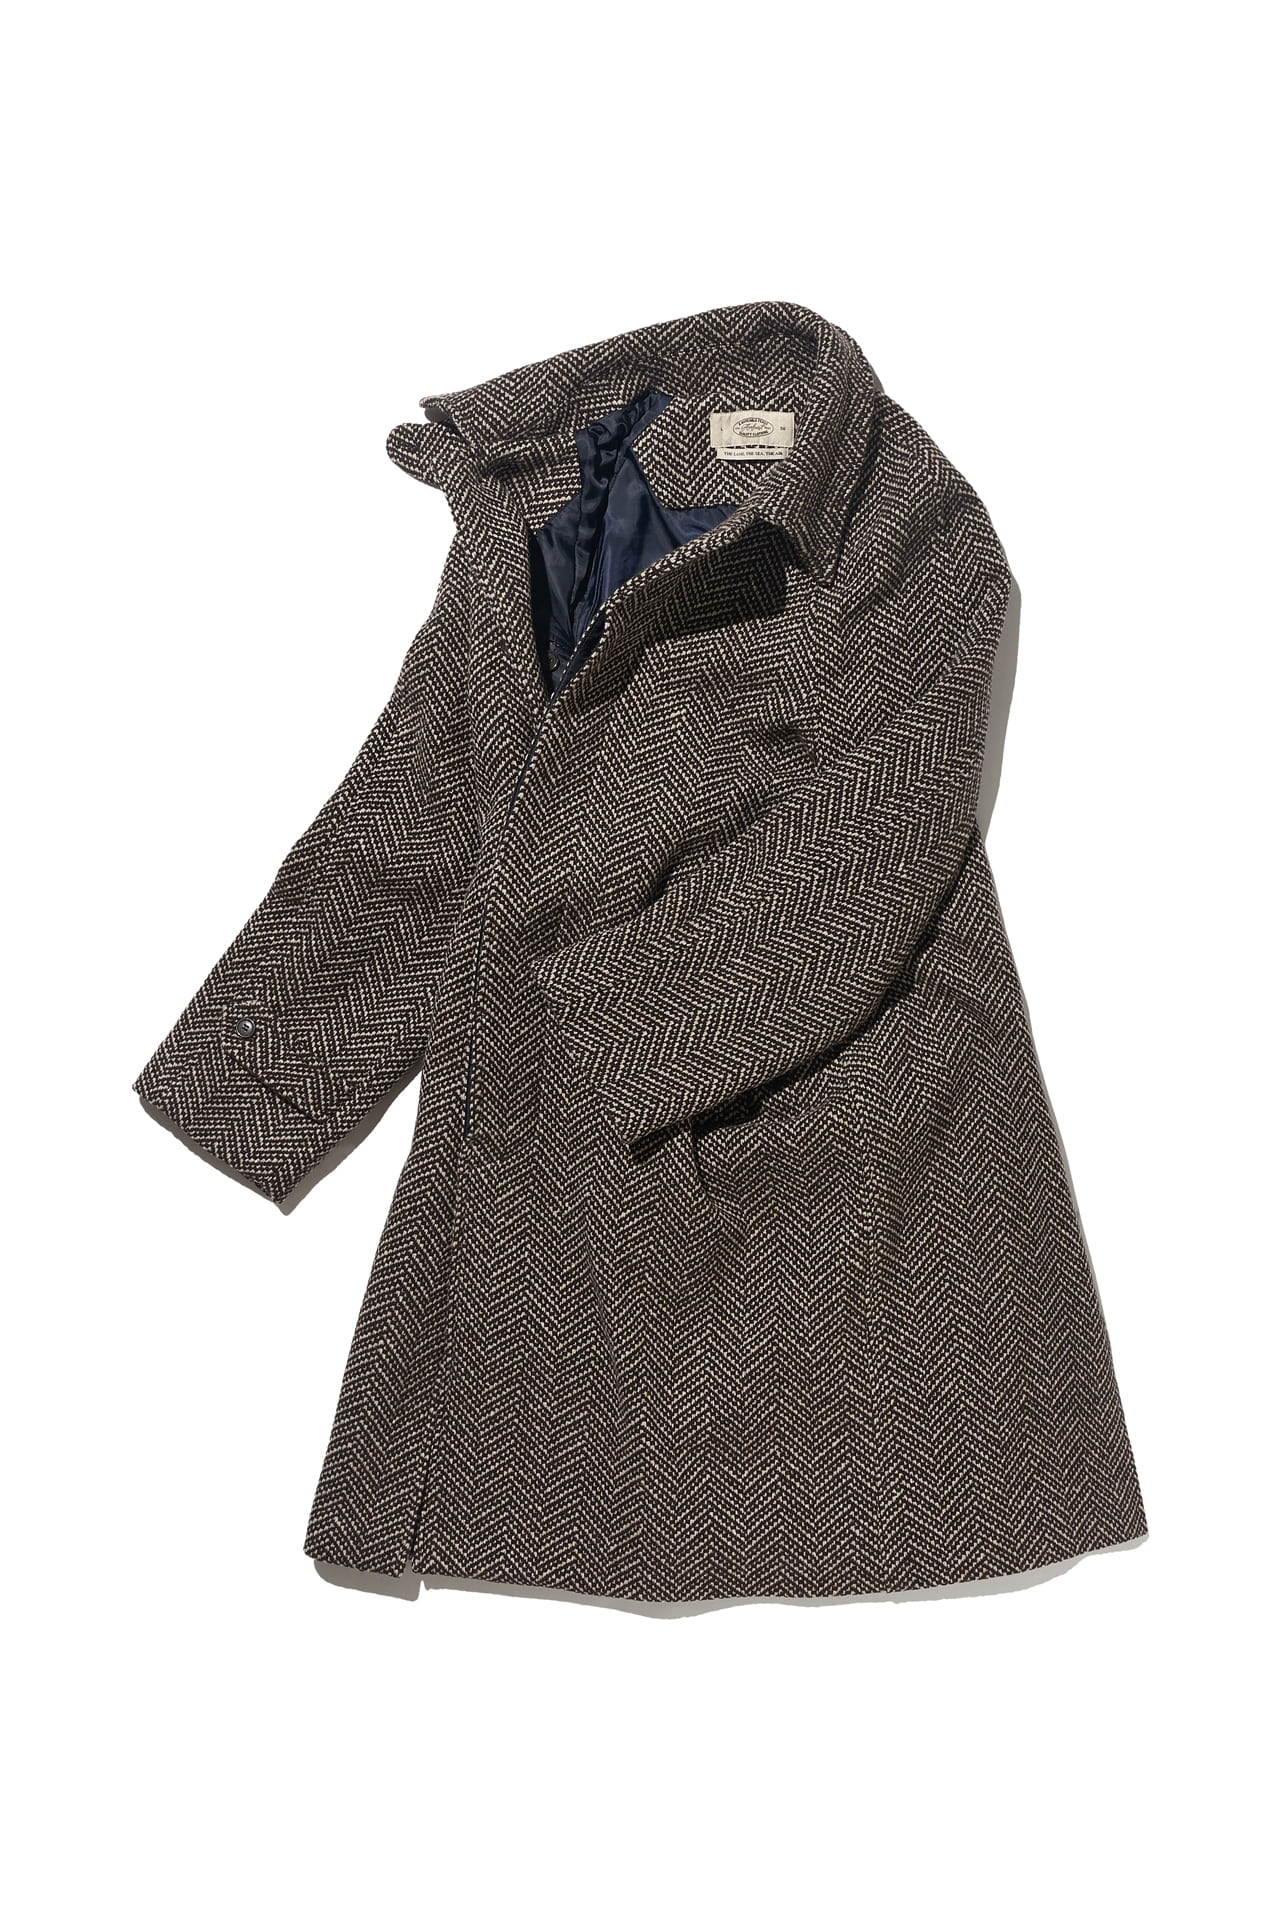 [Amfeast] COLOMBO FABRIC BASIC RAGLAN COAT